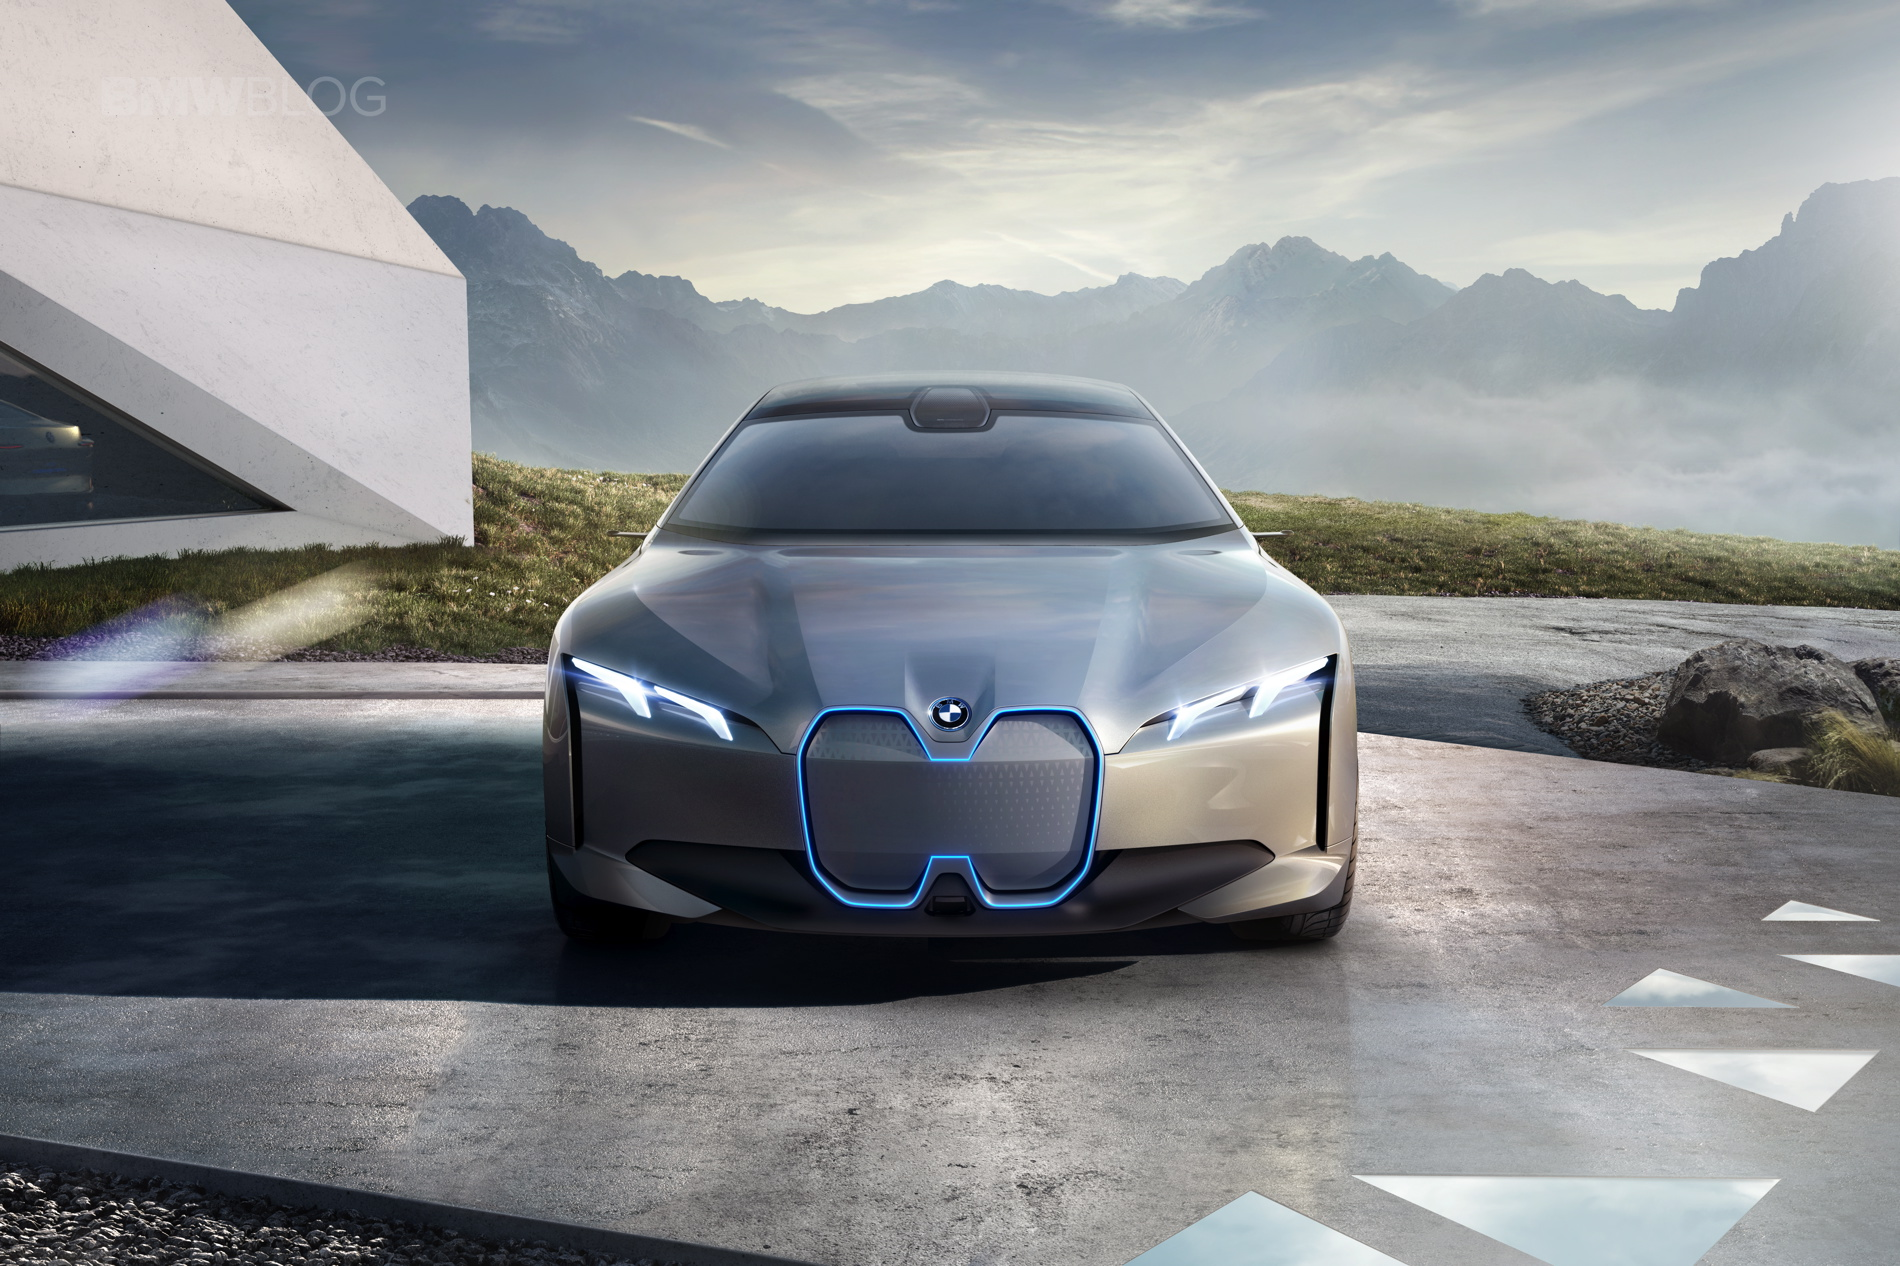 BMW introduces the Tesla fighter - BMW i Vision Dynamics